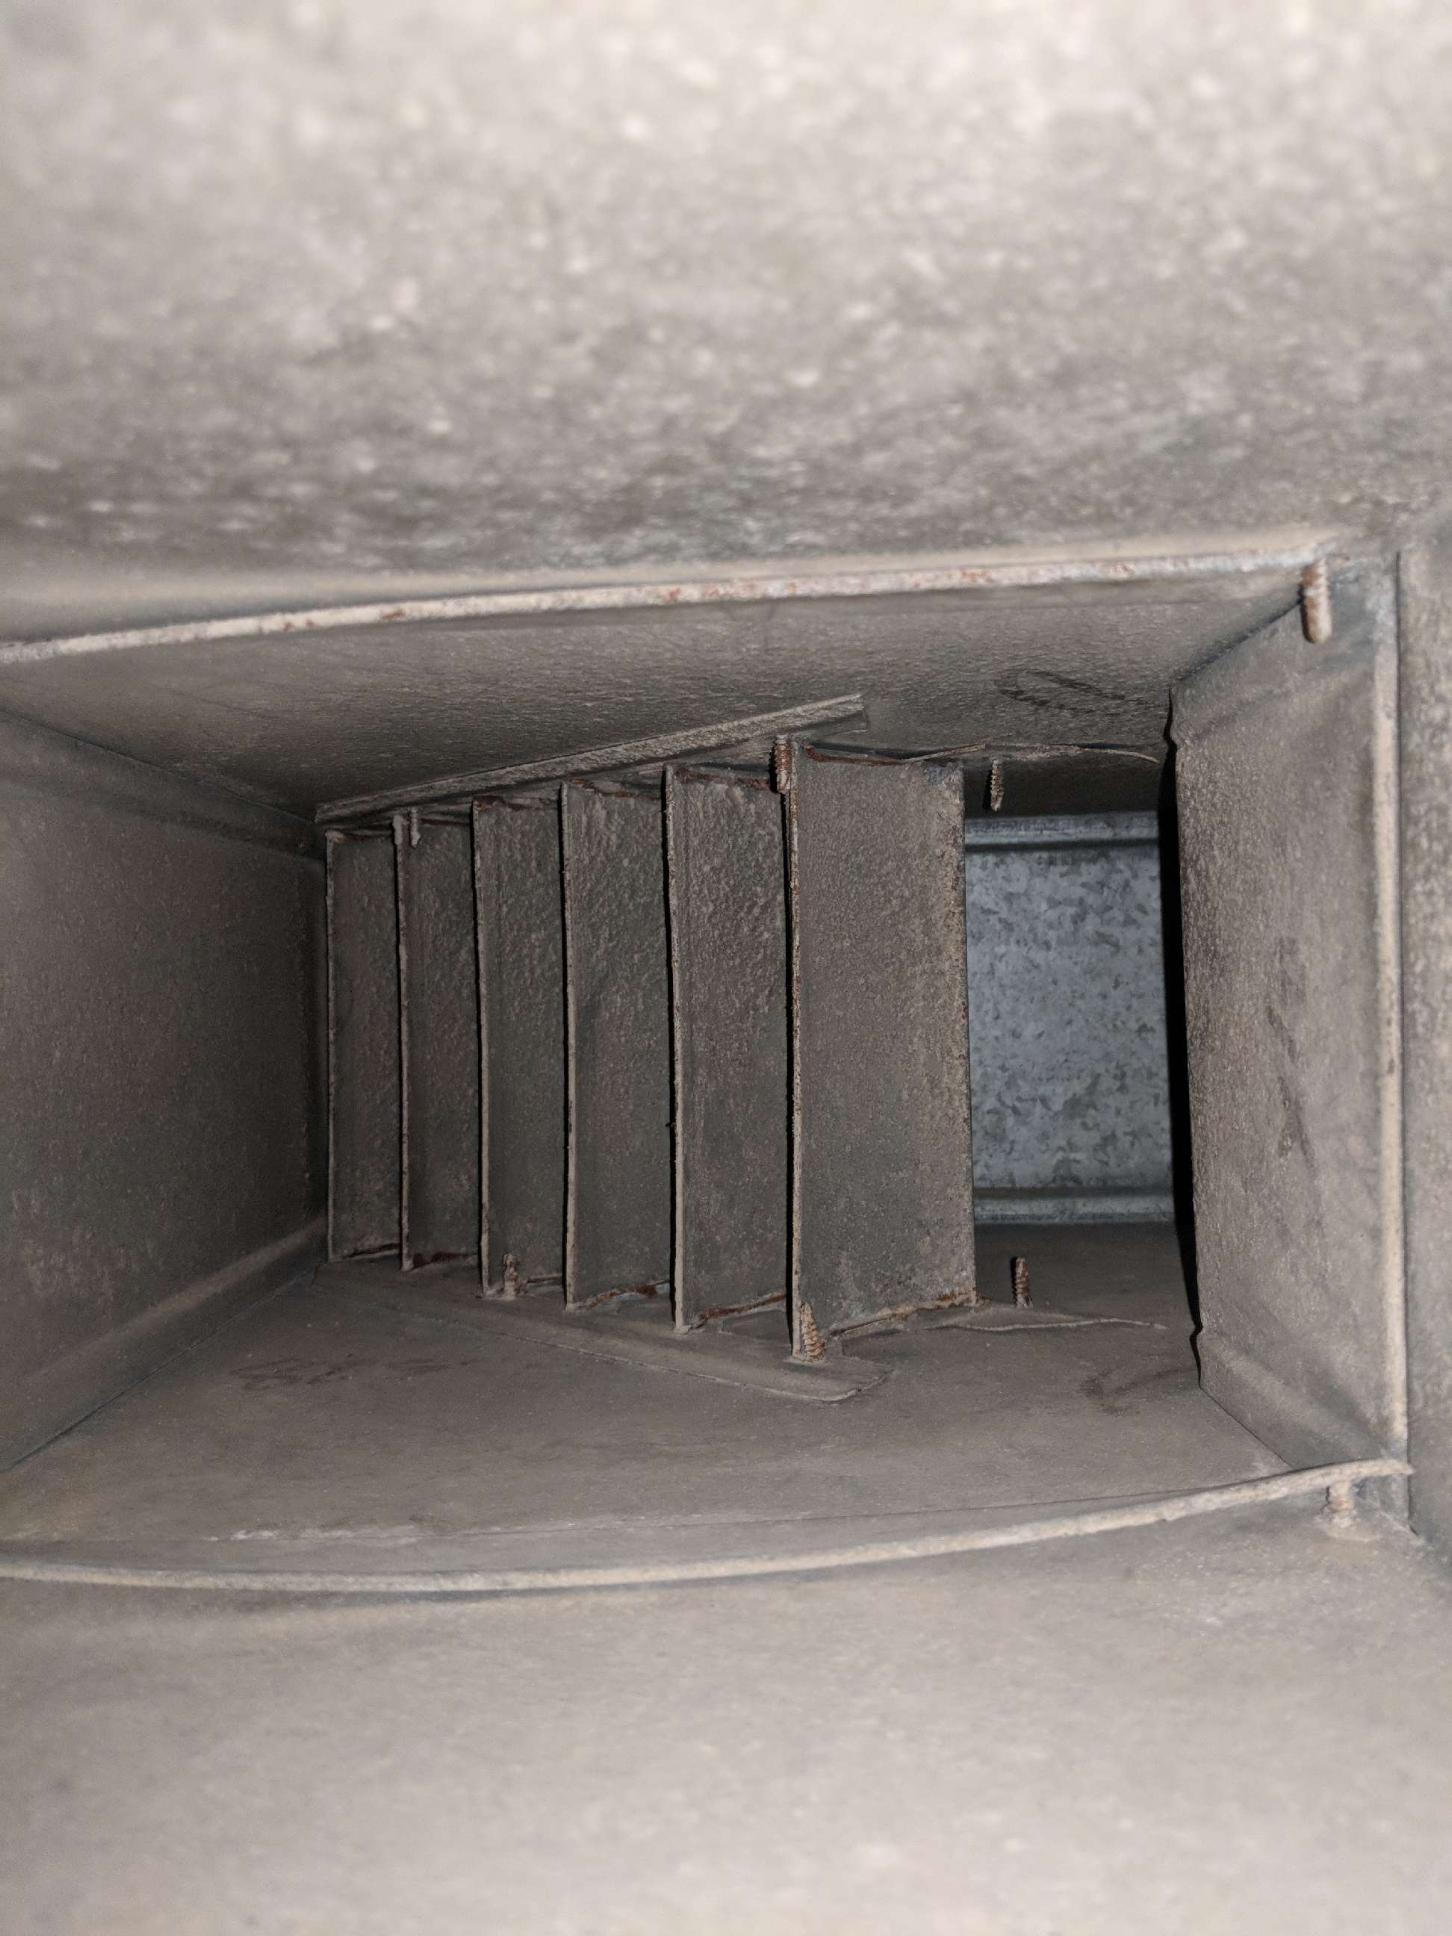 Air Duct Cleaning Richmond Virginia | Hyper Clean Duct Cleaning (804) 744-1080